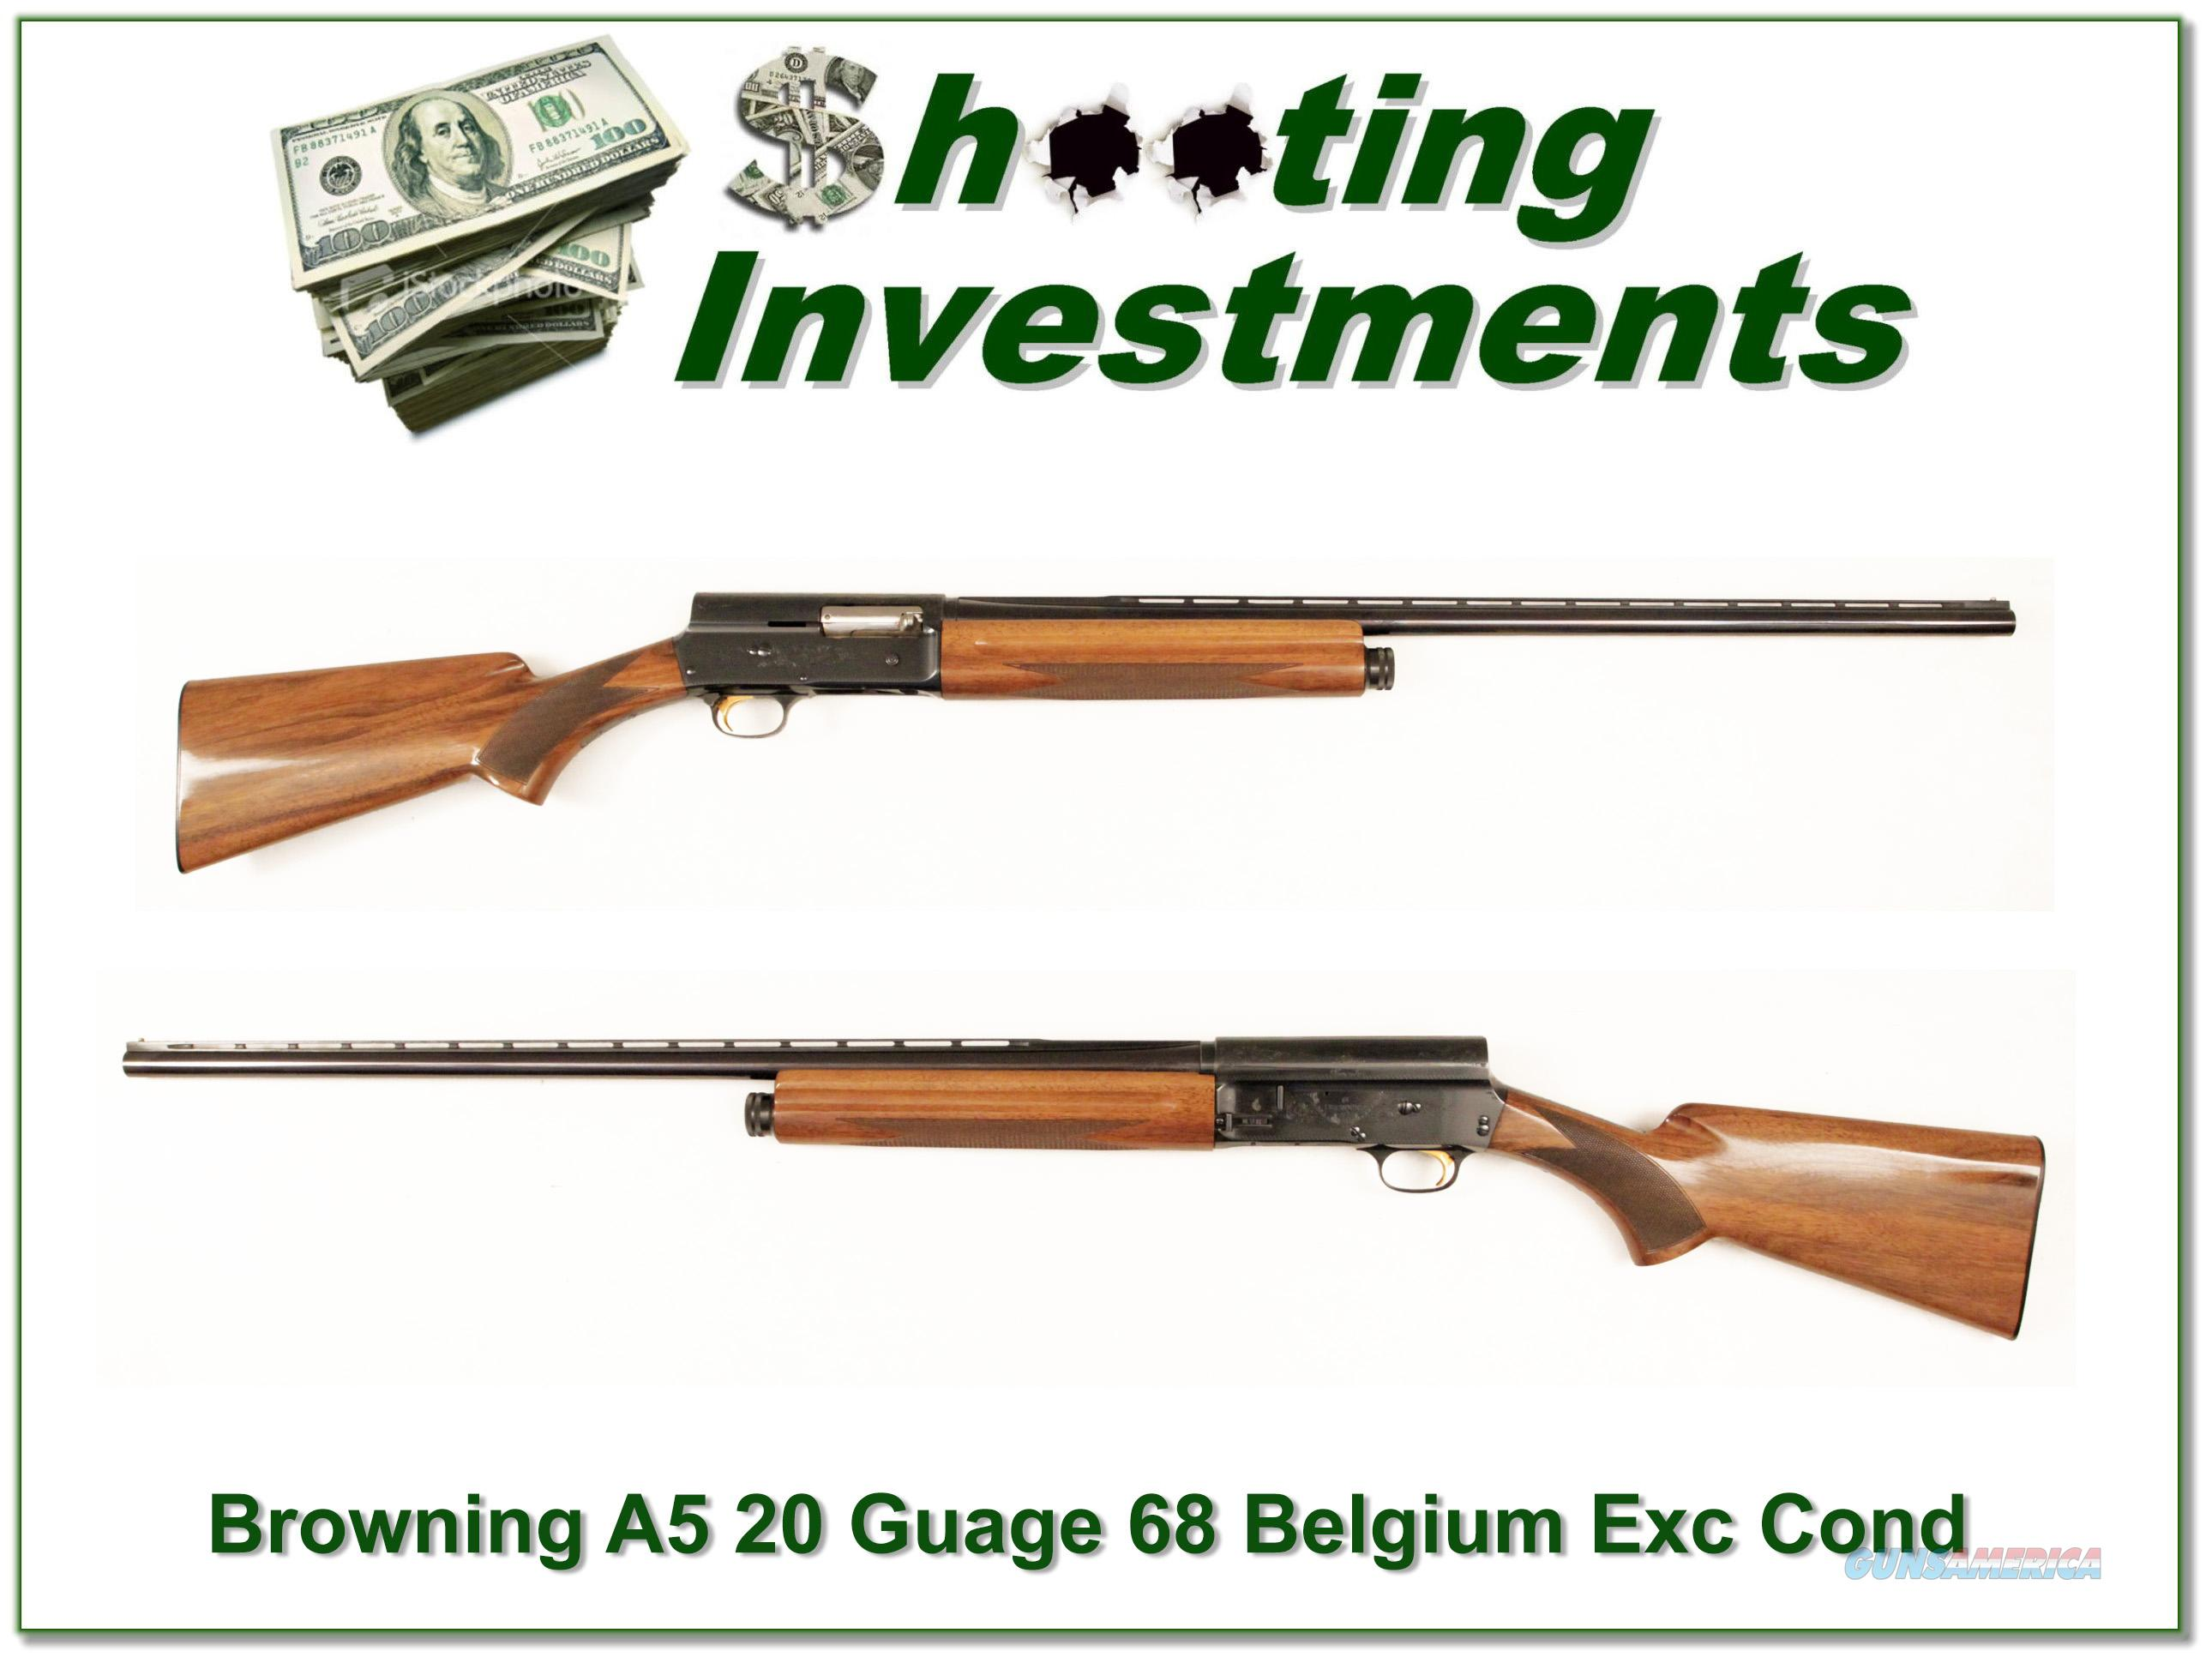 Browning A5 Twenty Gauge 68 Belgium Nice Wood VR!  Guns > Shotguns > Browning Shotguns > Autoloaders > Hunting